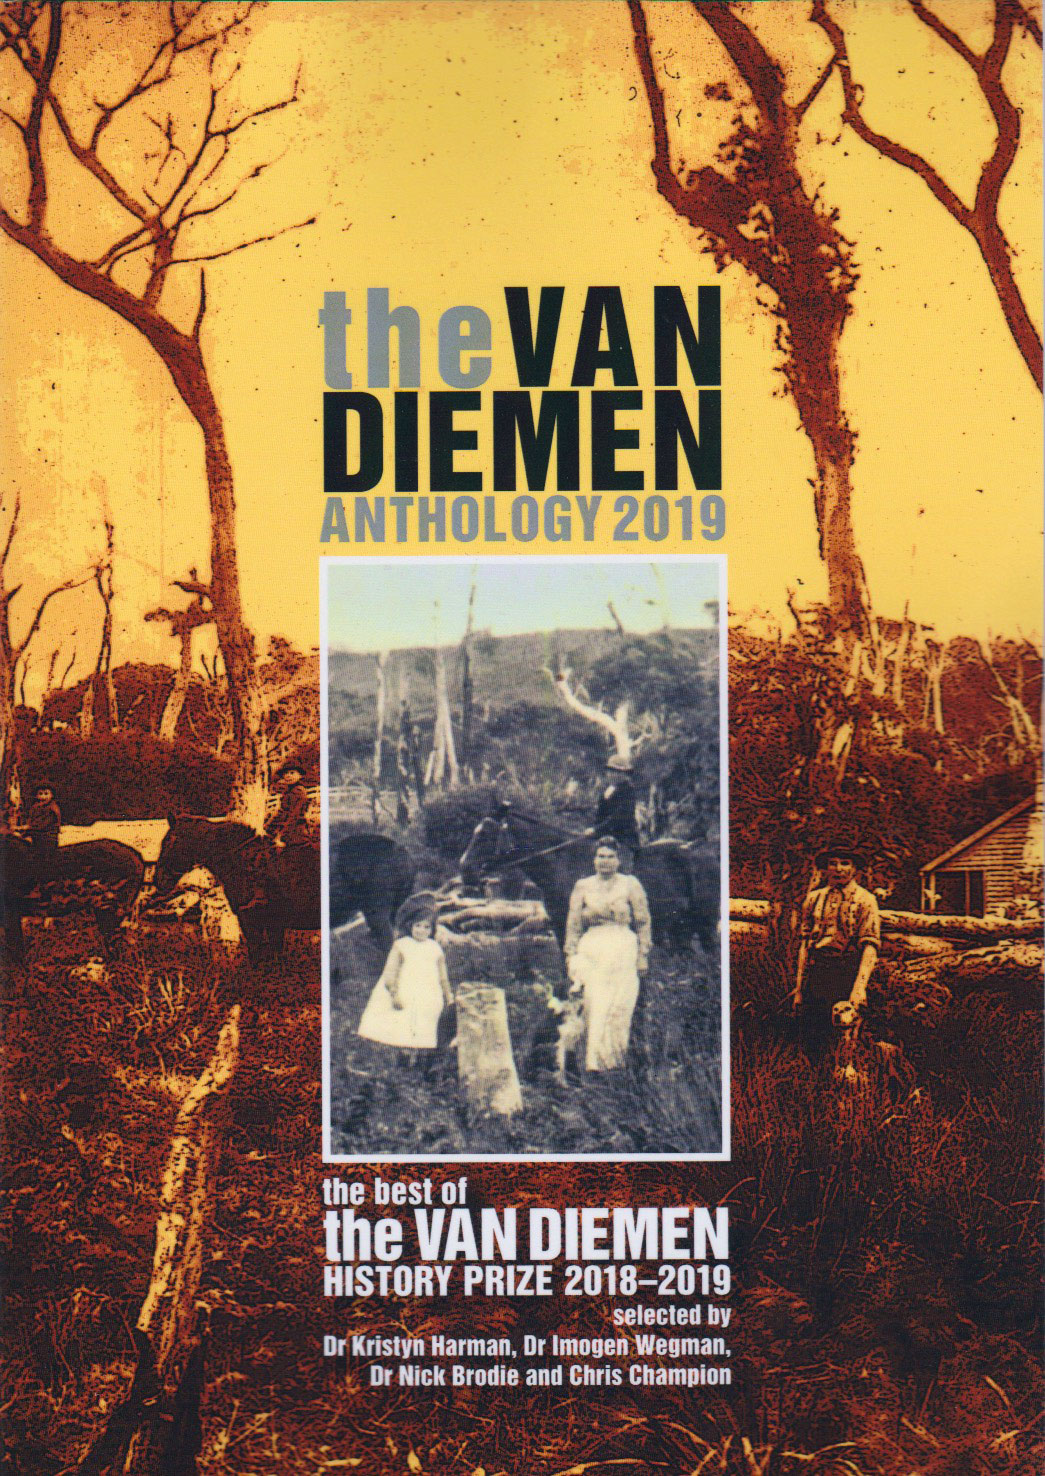 Van Diemen Anthology, 2019